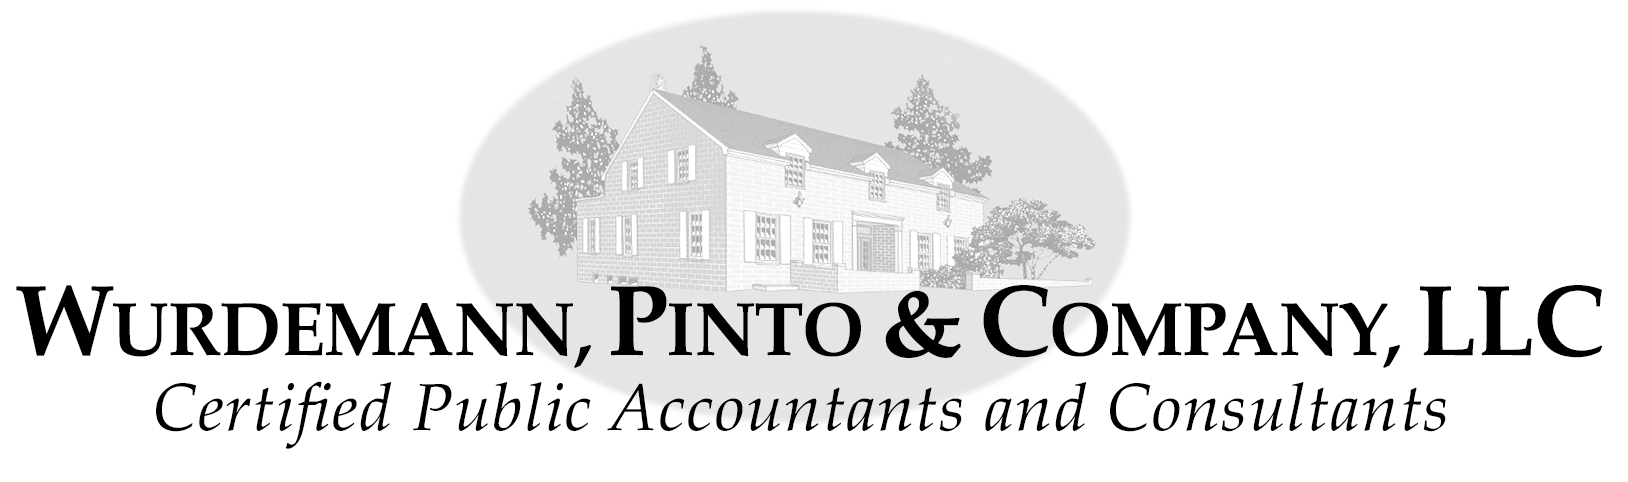 Hackensack, NJ Accounting Firm | Elder Care | Wurdemann, Pinto & Co. LLC